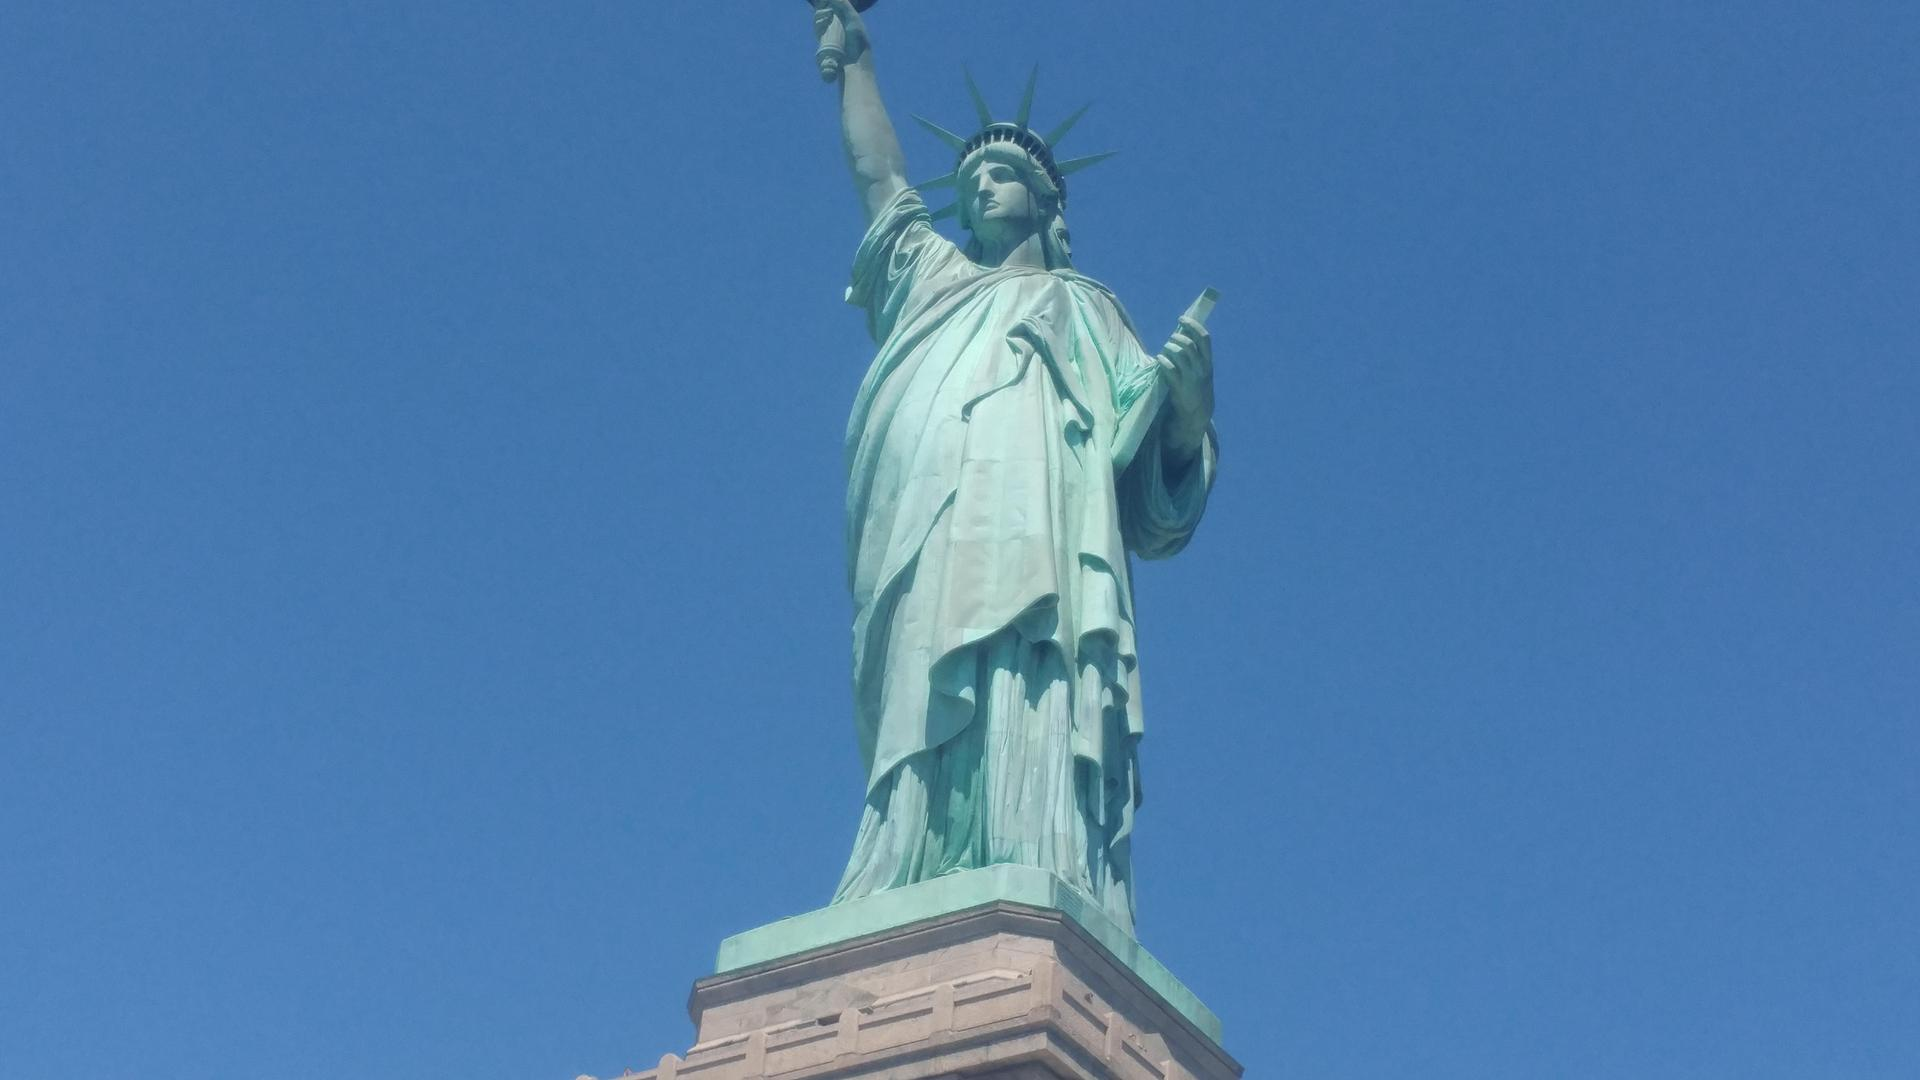 Our Family Trip to the Statue of Liberty